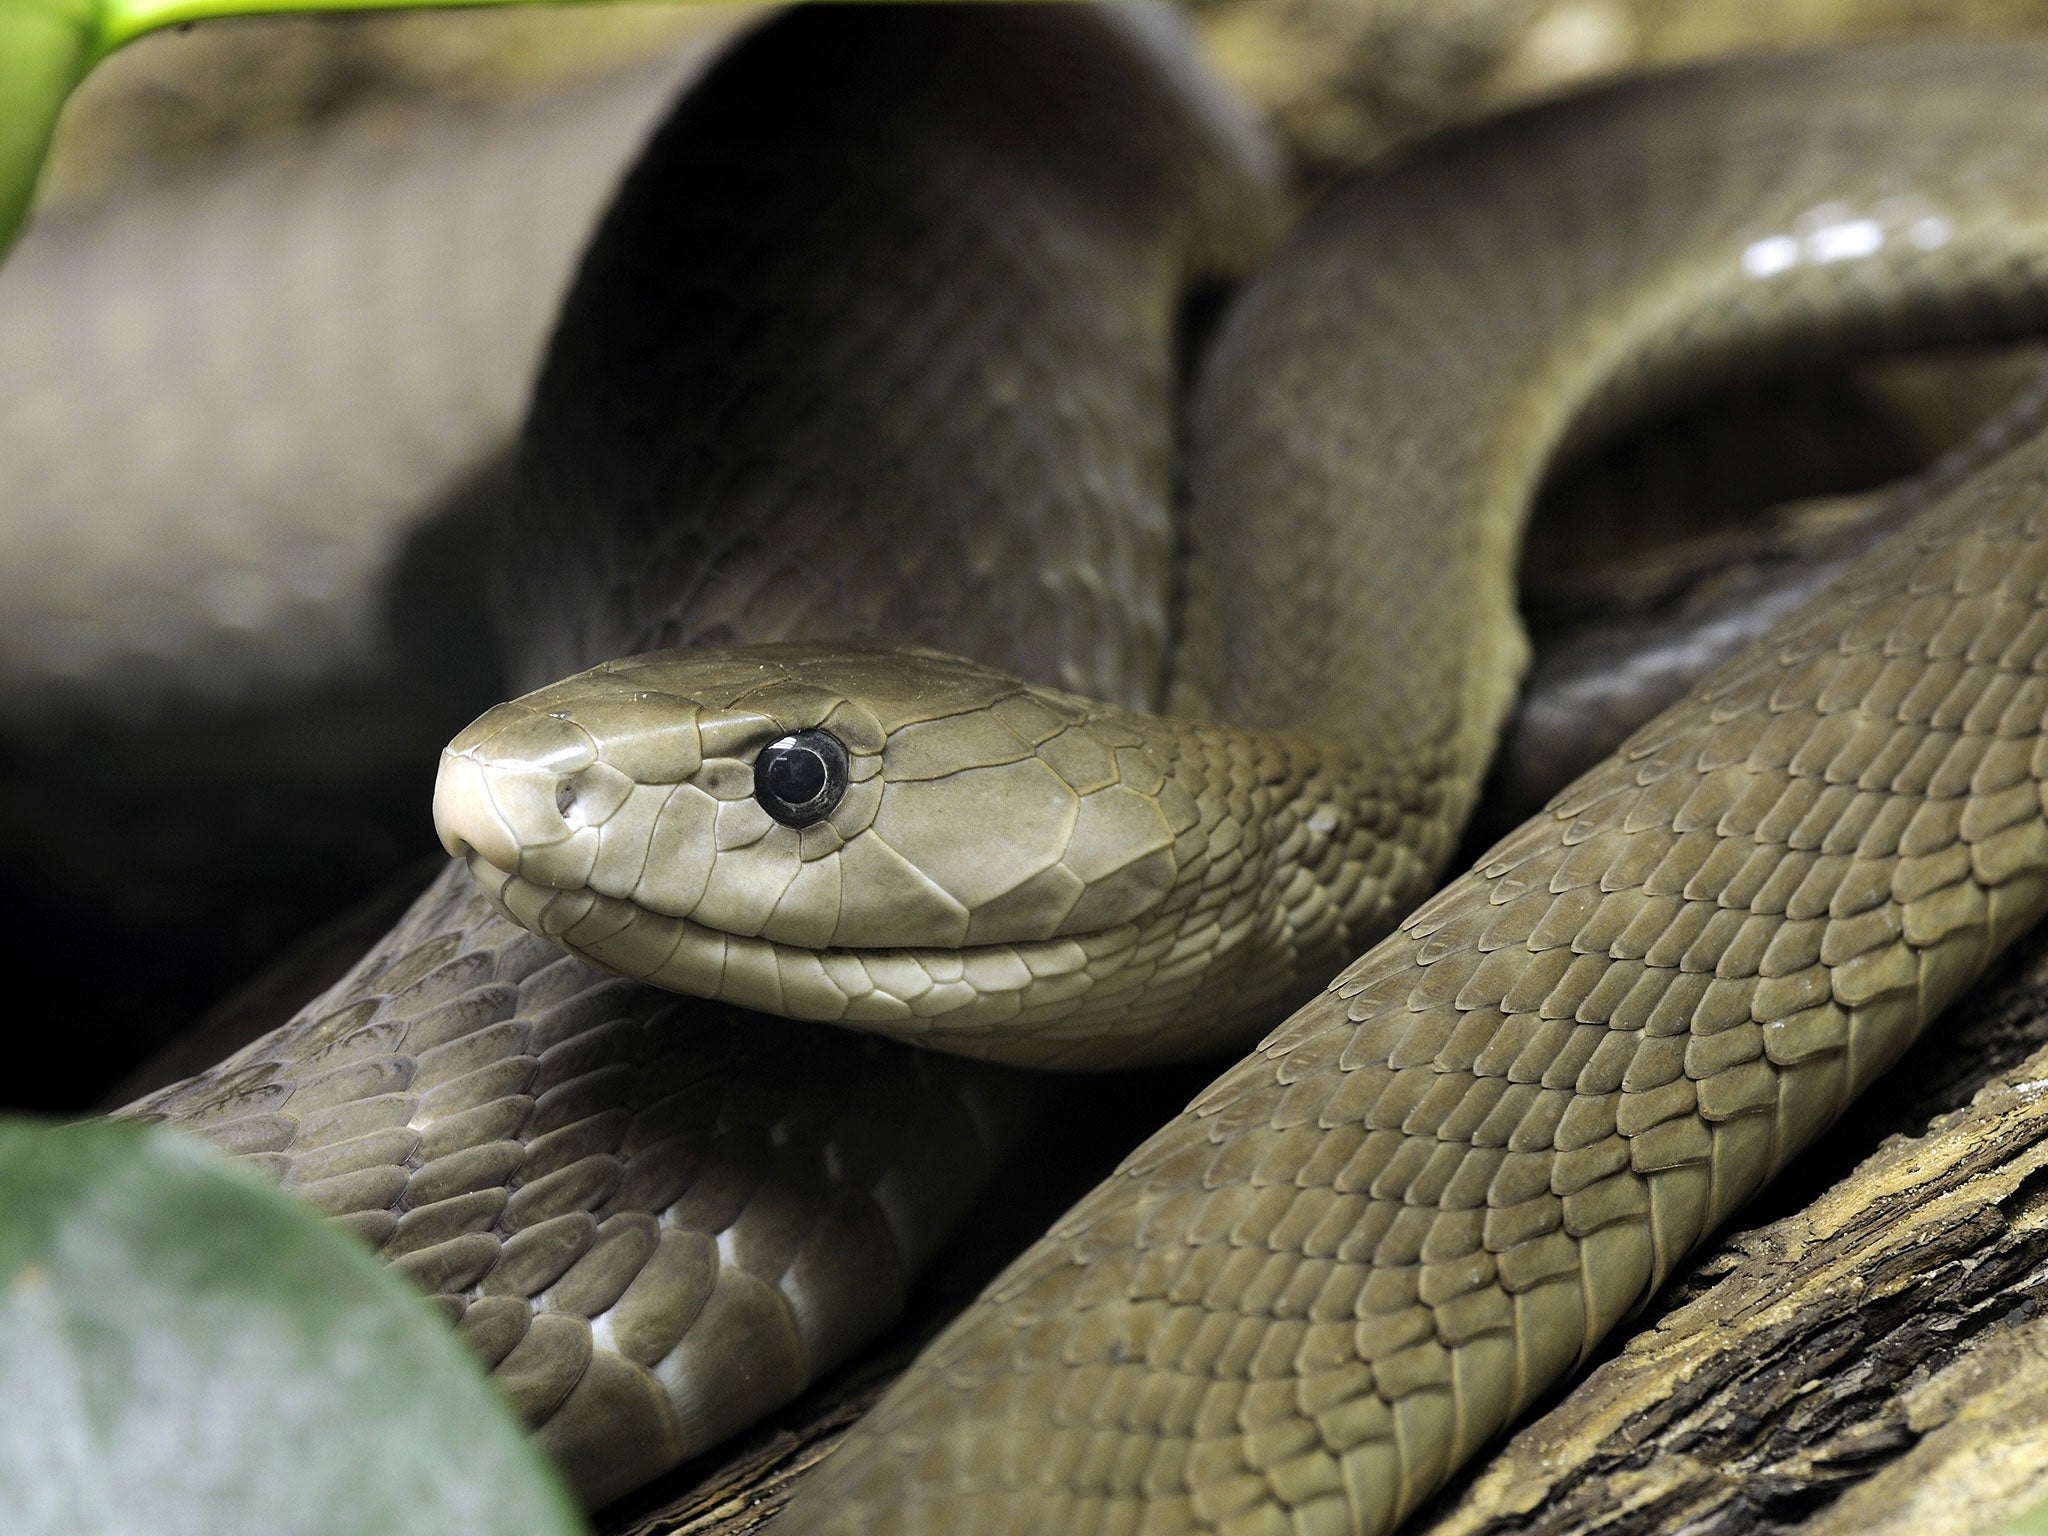 man makes deadly snakes bite him 160 times in hunt for human